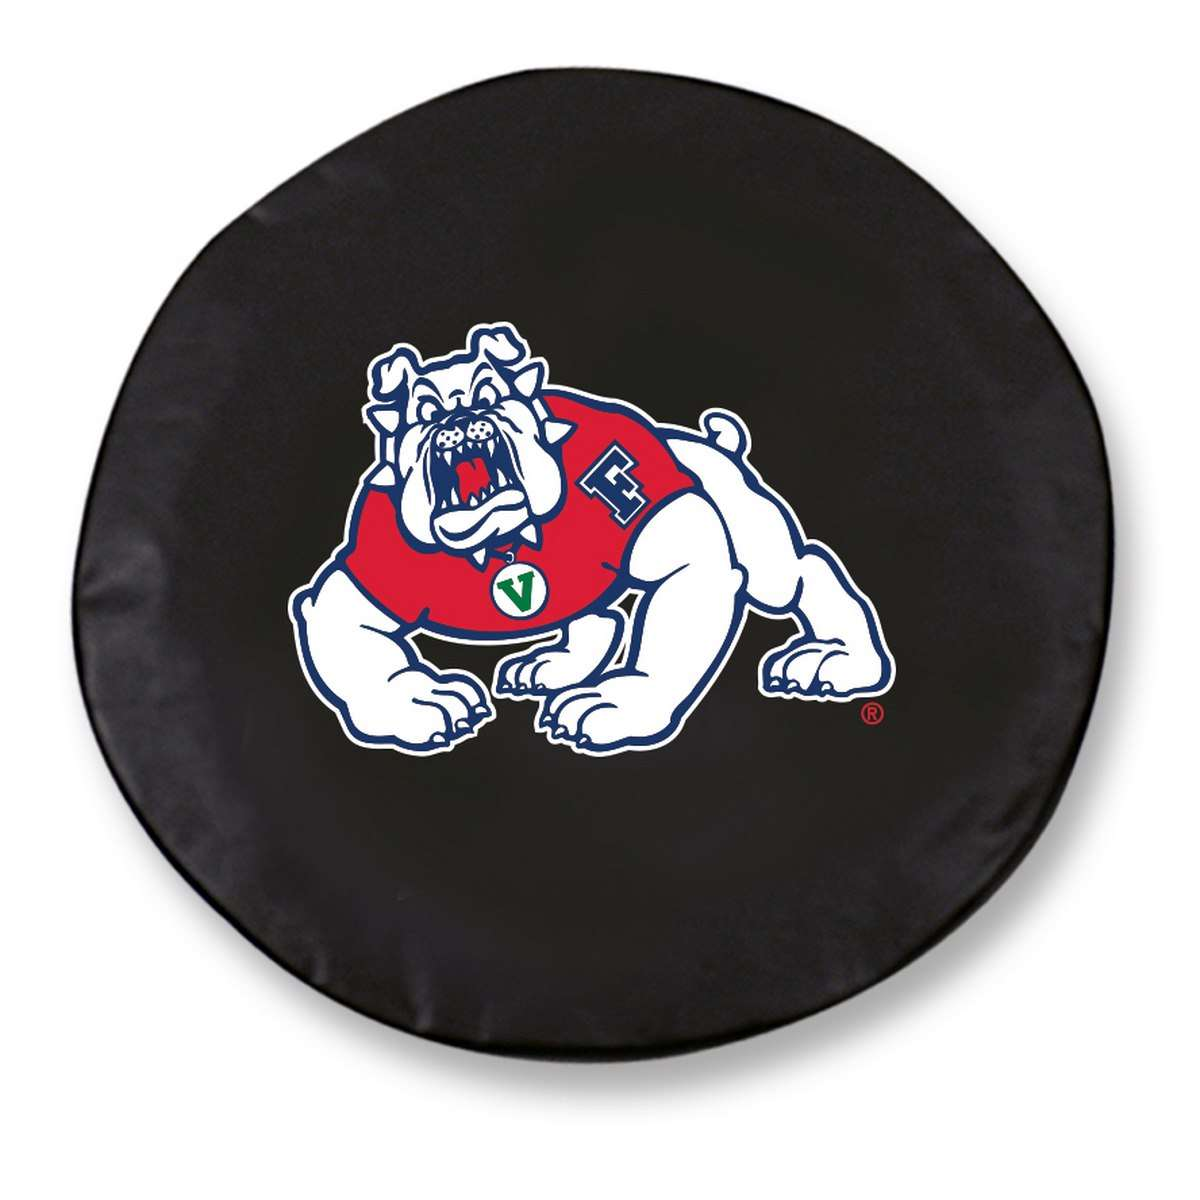 "29.75"" x 8"" Black Fresno State University Vinyl Tire Cover"